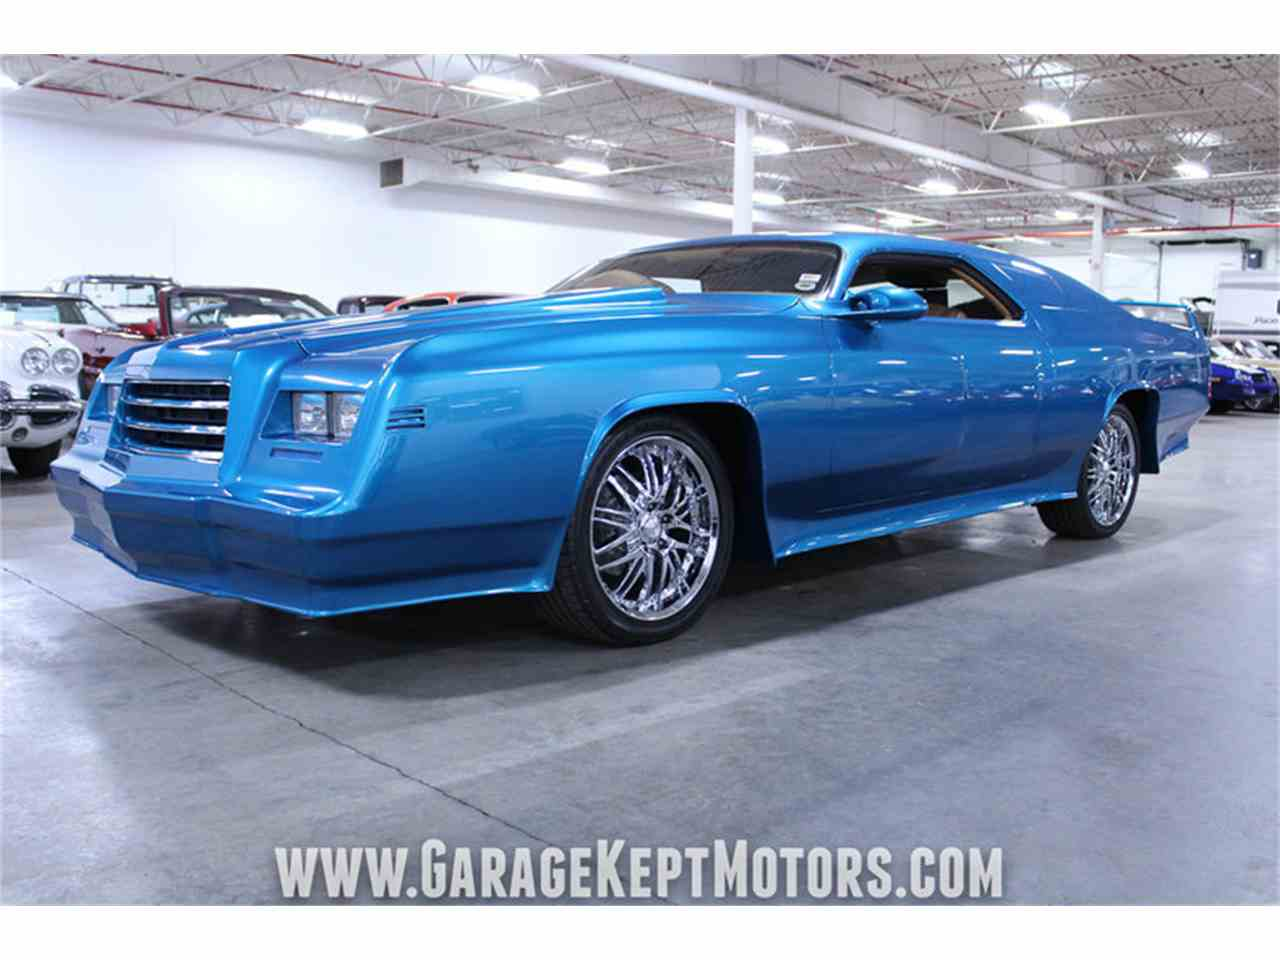 Large Picture of '78 Dodge Magnum located in Michigan - $119,900.00 Offered by Garage Kept Motors - MDQ7